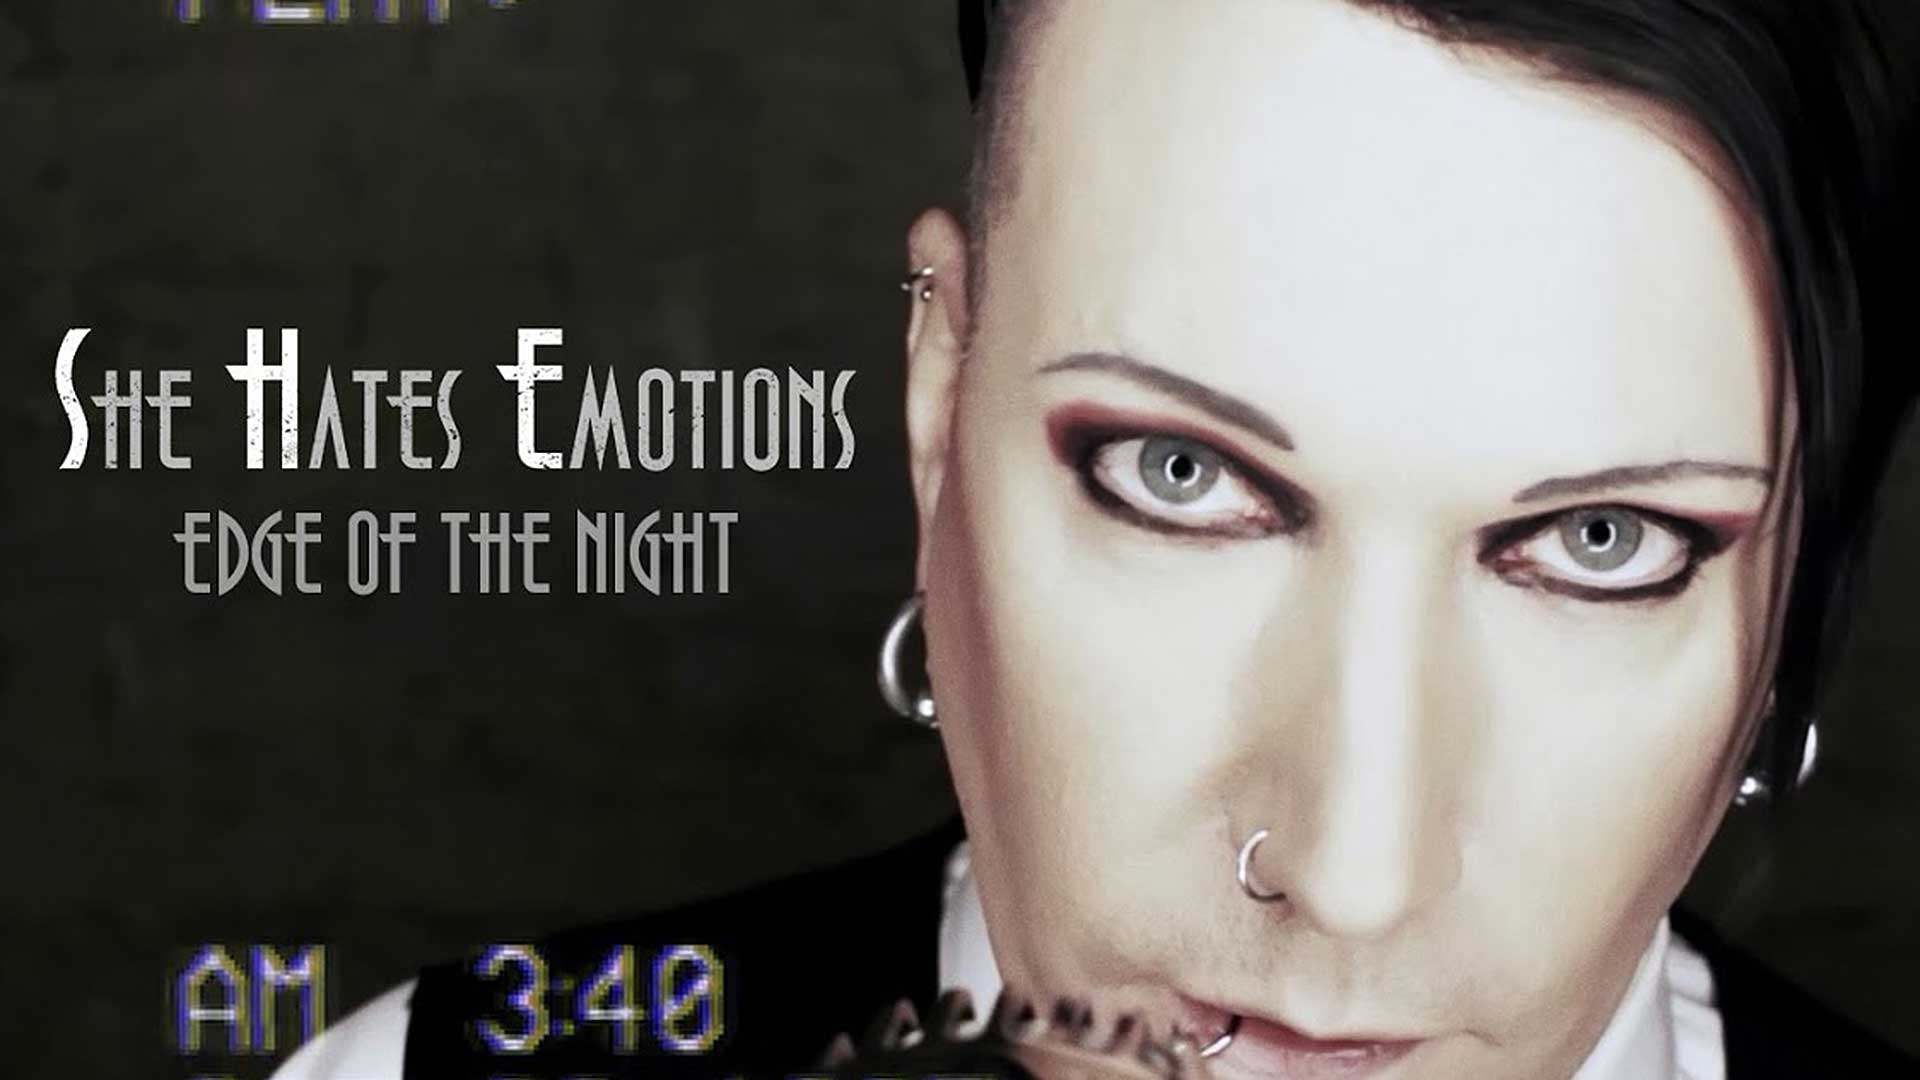 She Hates Emotions - Edge Of The Night